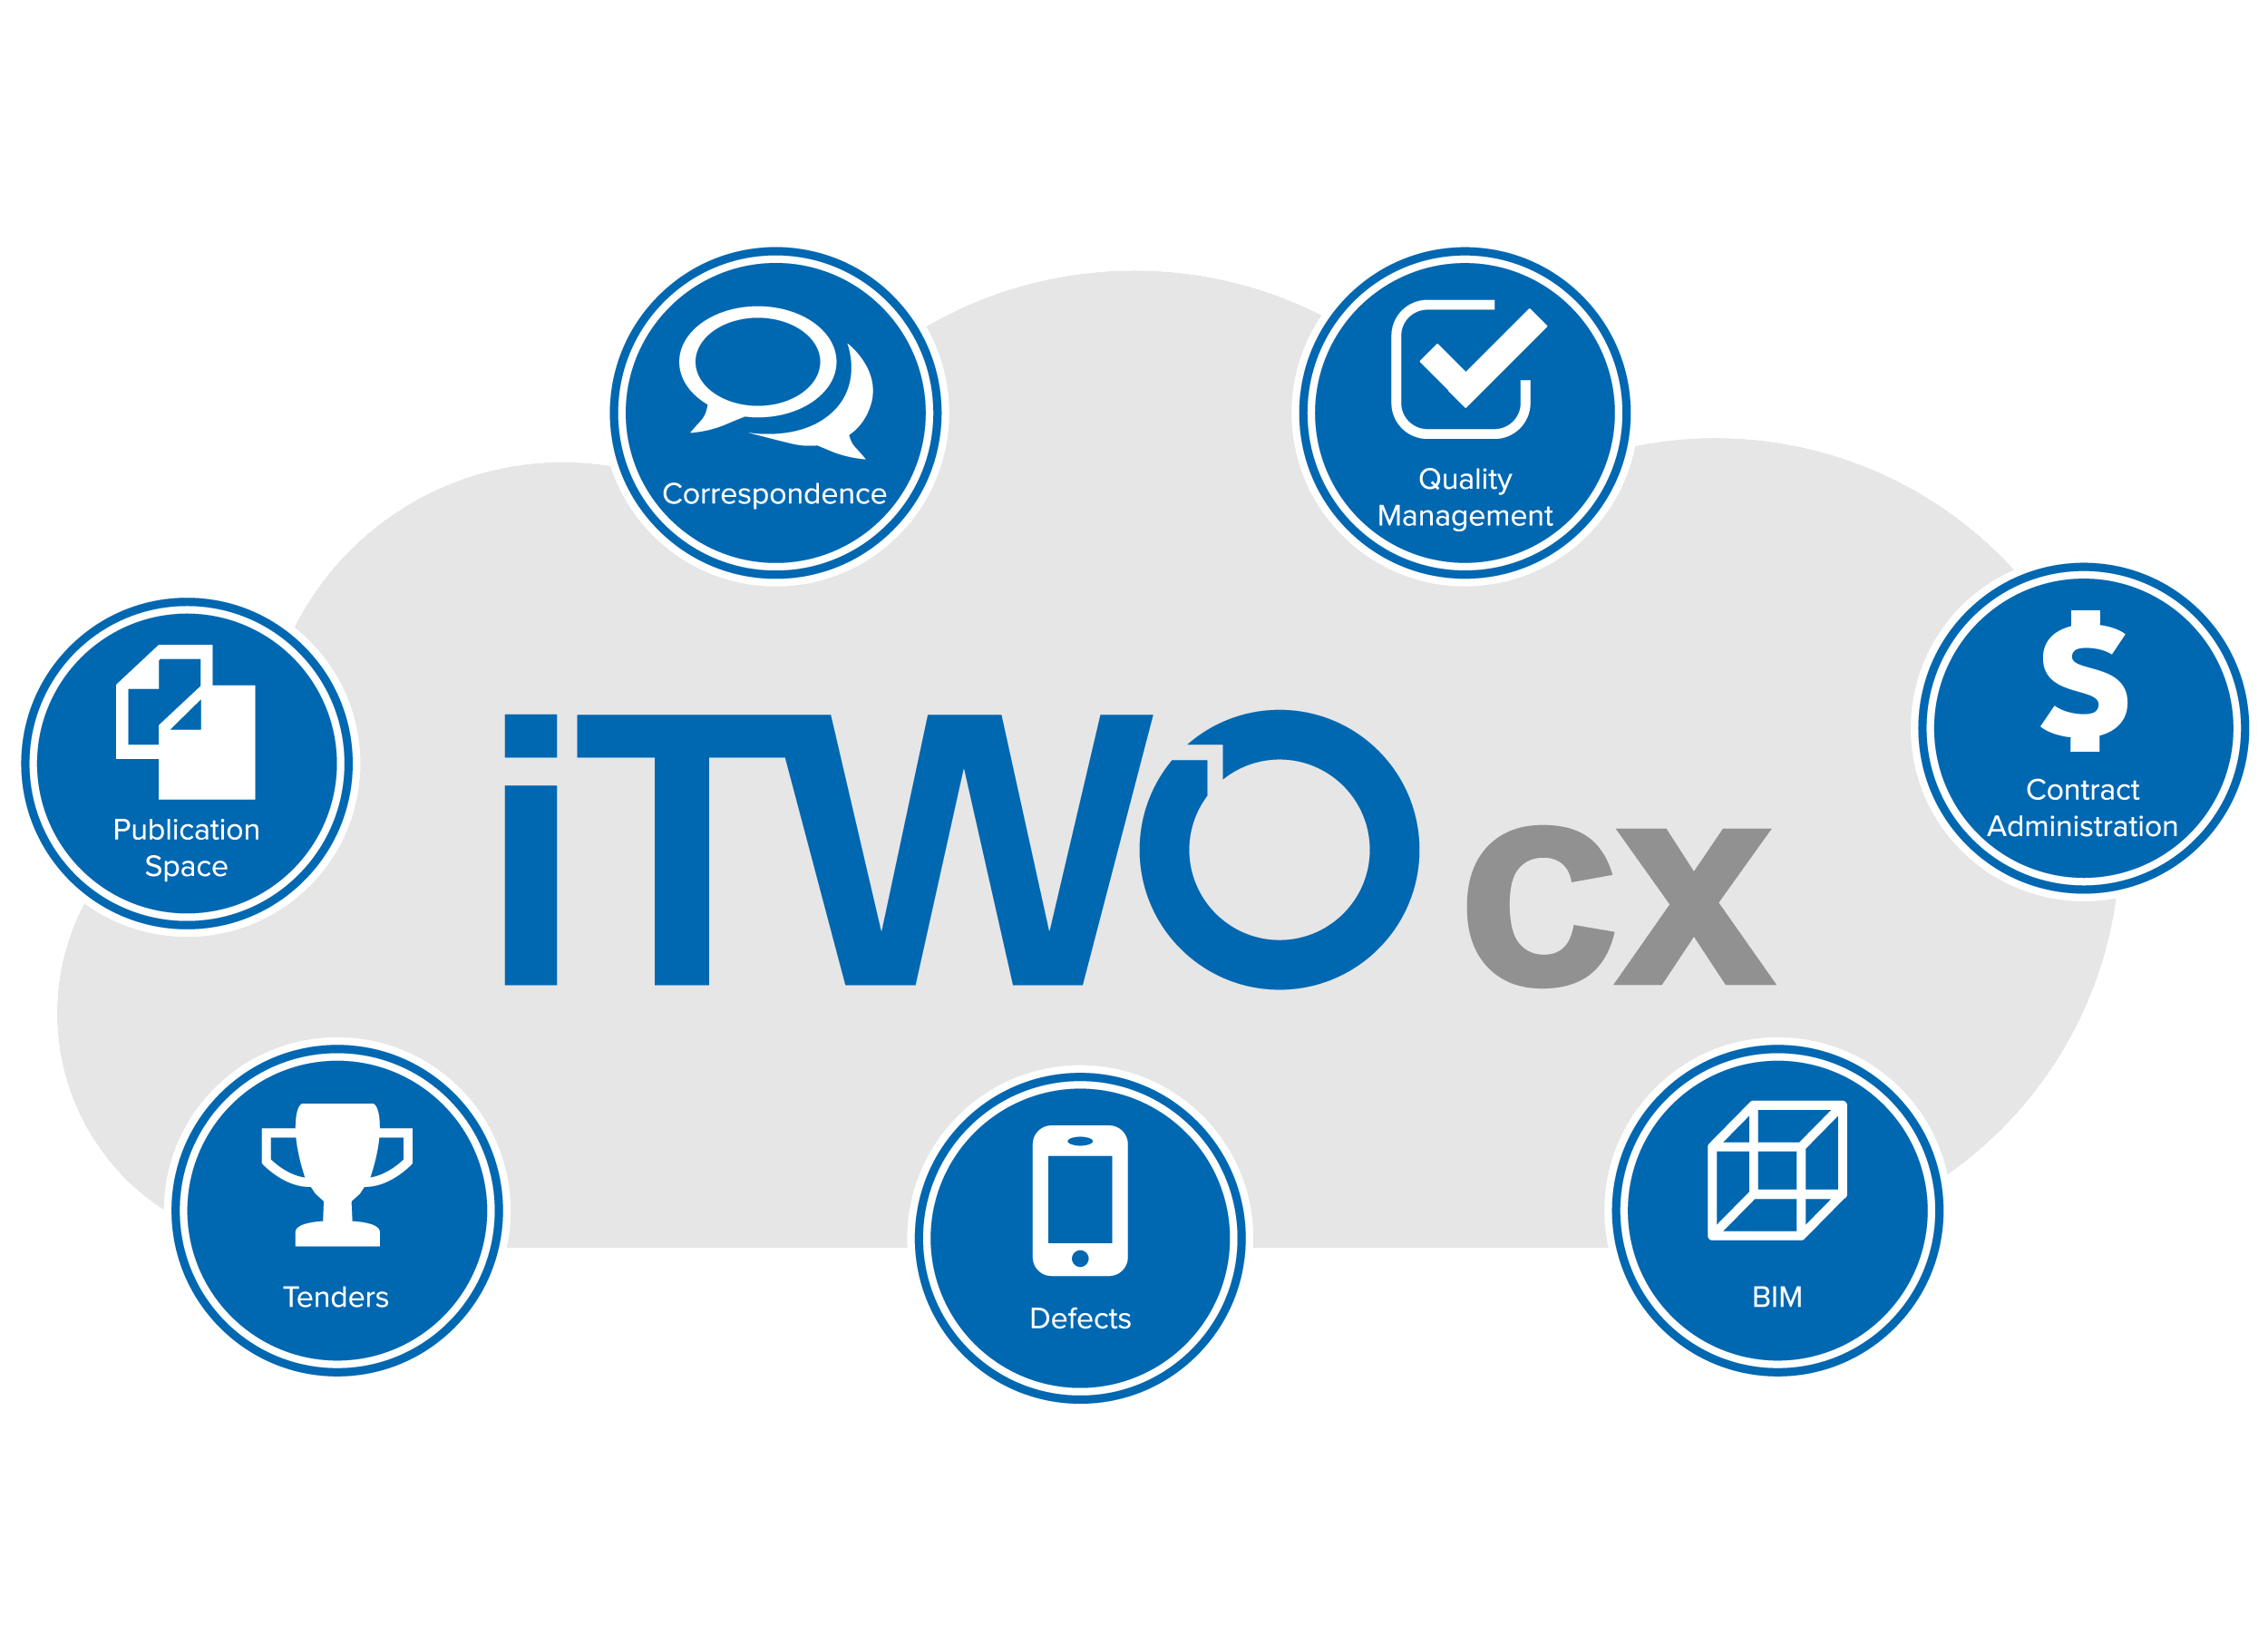 iTWO cx Cloud Based